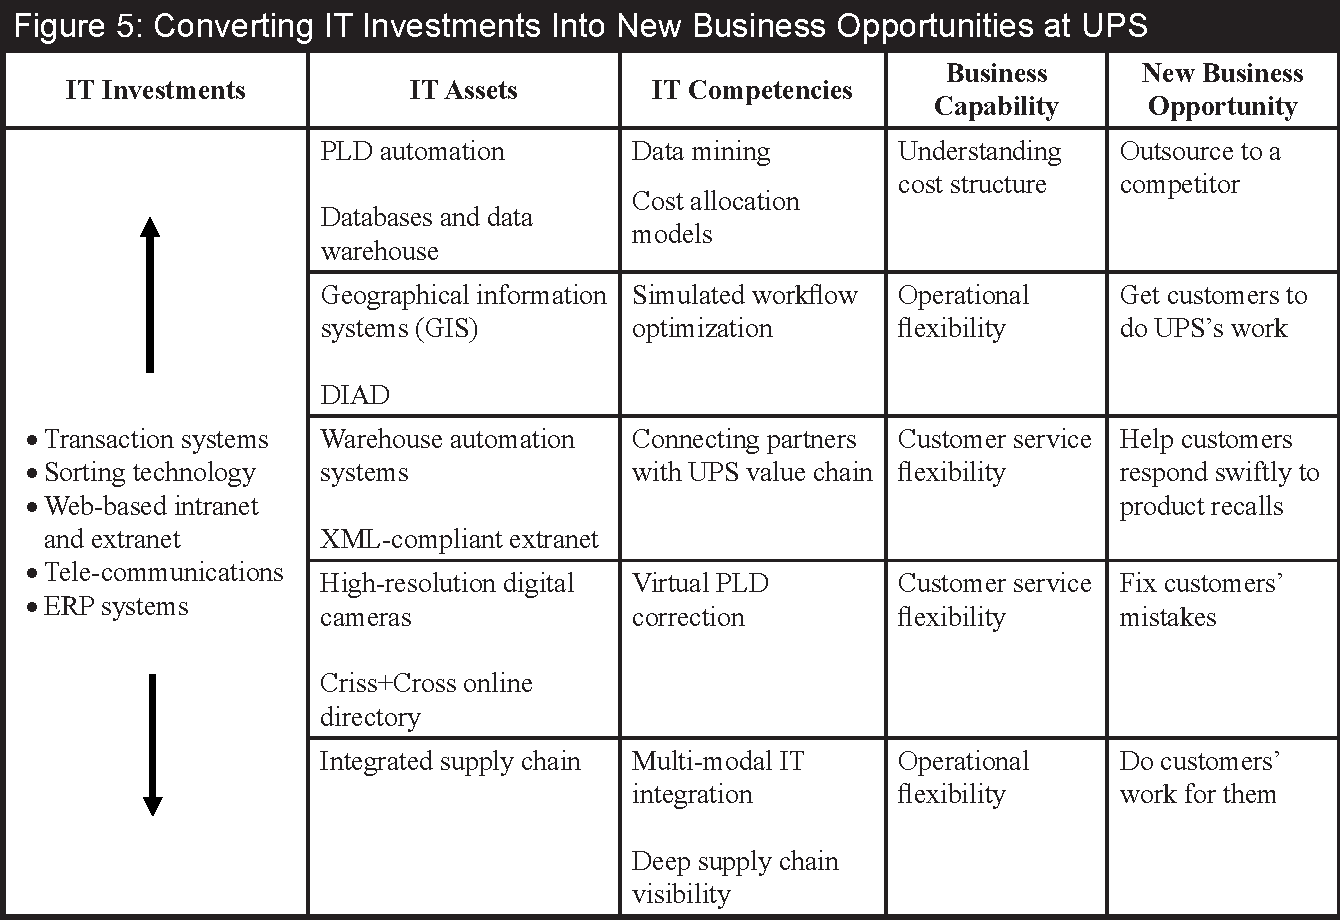 Figure 5 from Innovating to Create IT-Based New Business